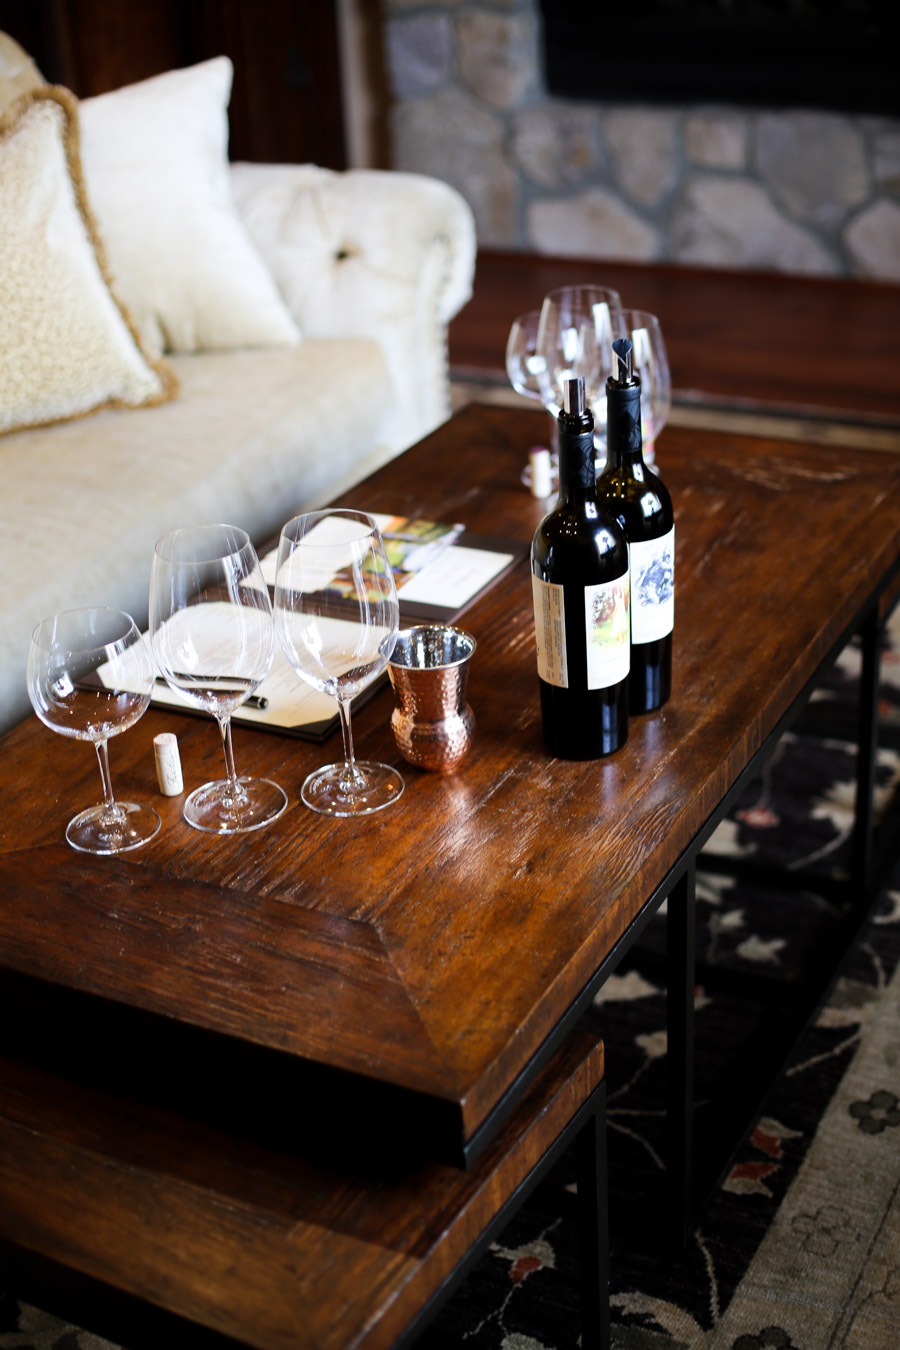 St. Helena Wineries - A Complete Itinerary - Fantesca Winery Photos